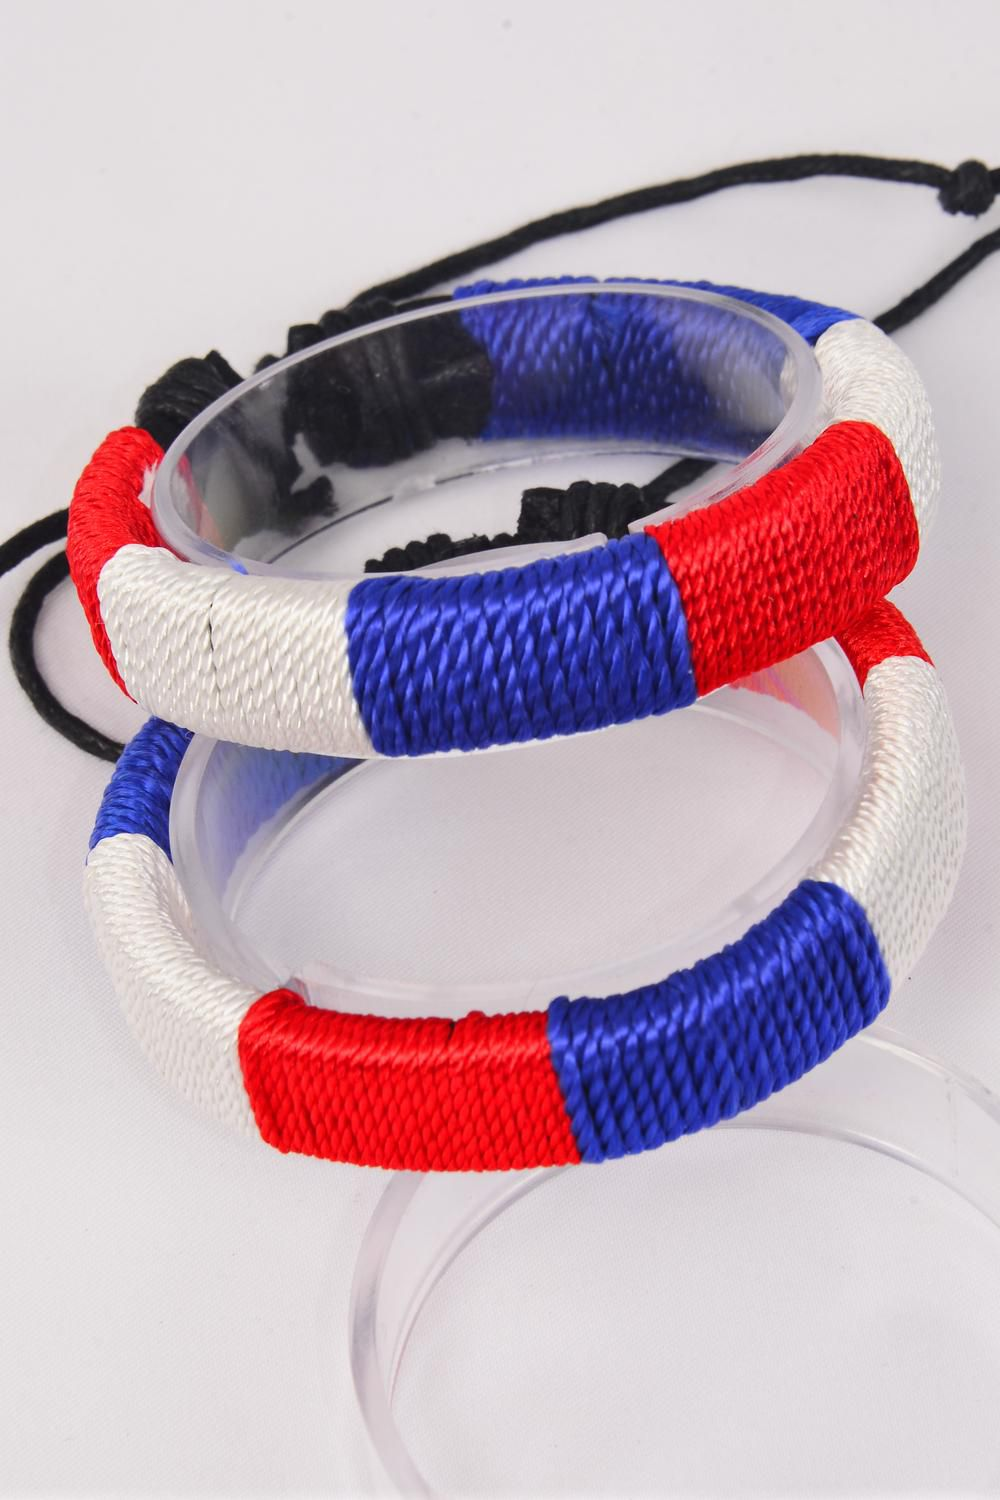 Bracelet Leather Leather Woven Style Ombre Flag Adjustable/DZ **Unisex** Adjustable,Hang tag & OPP Bag & UPC Code